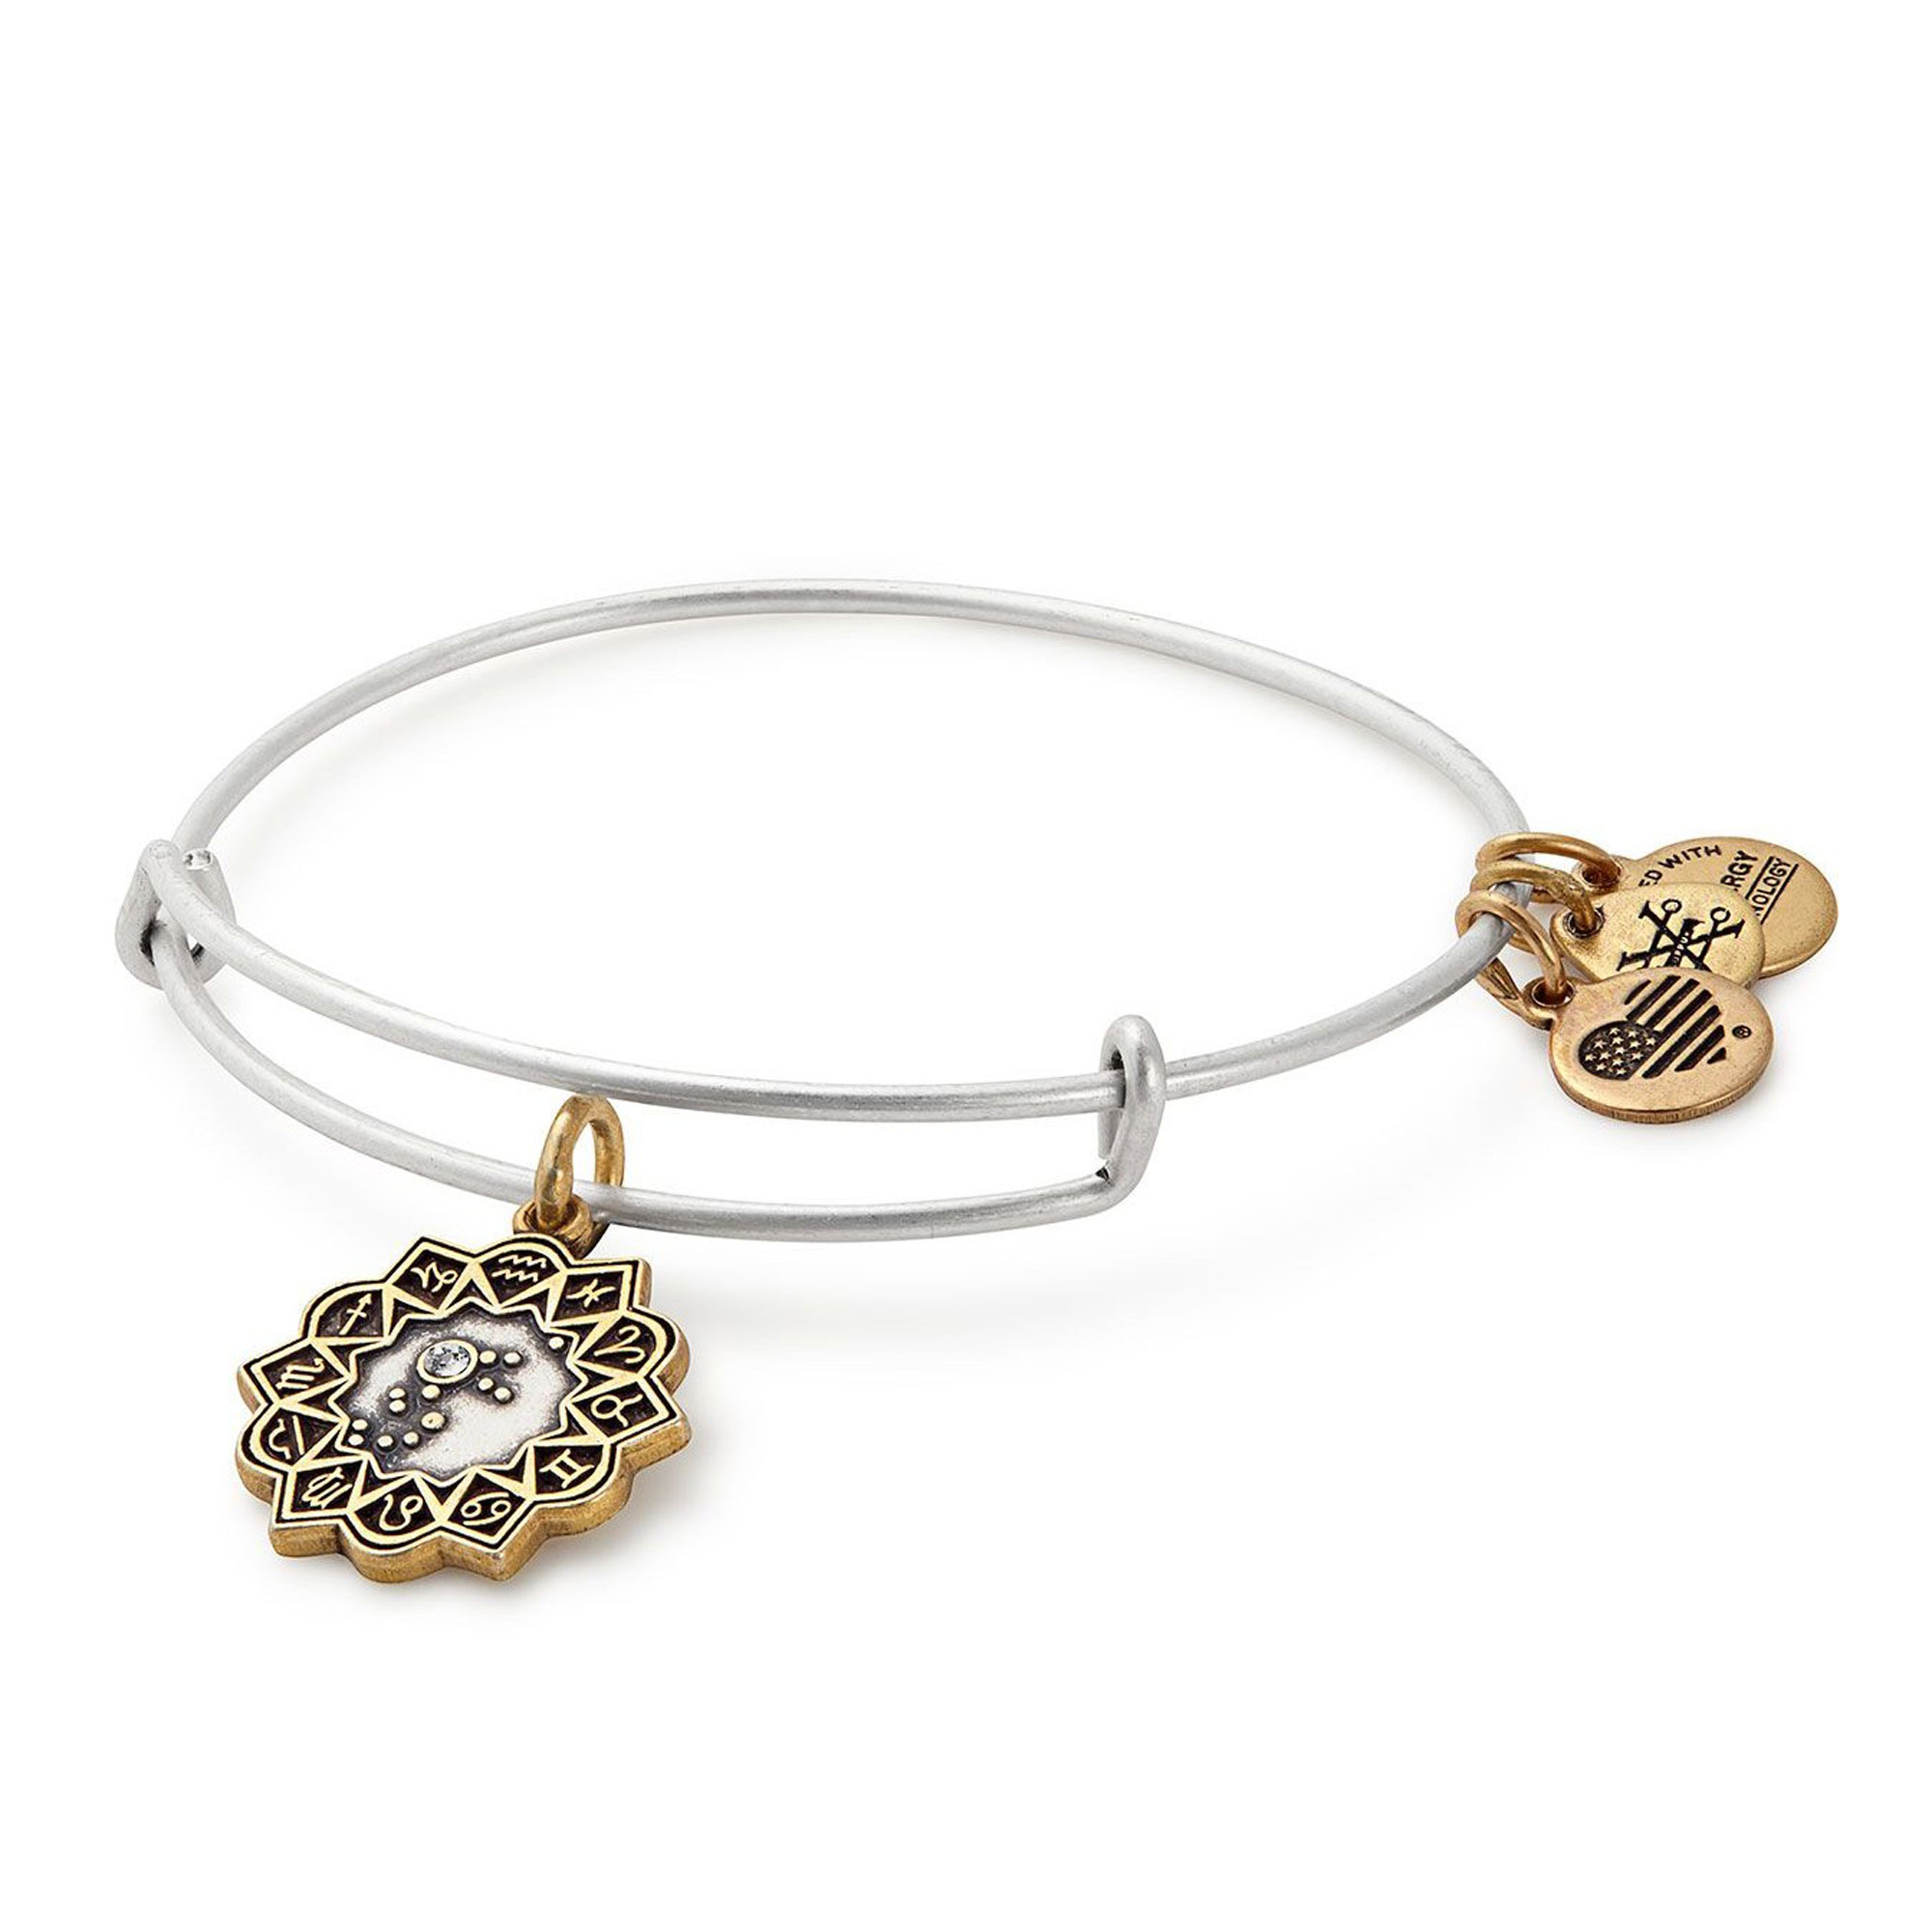 JEWELRY UNDER $50 Gift GuideCharm BraceletCourtesy Alex and Ani